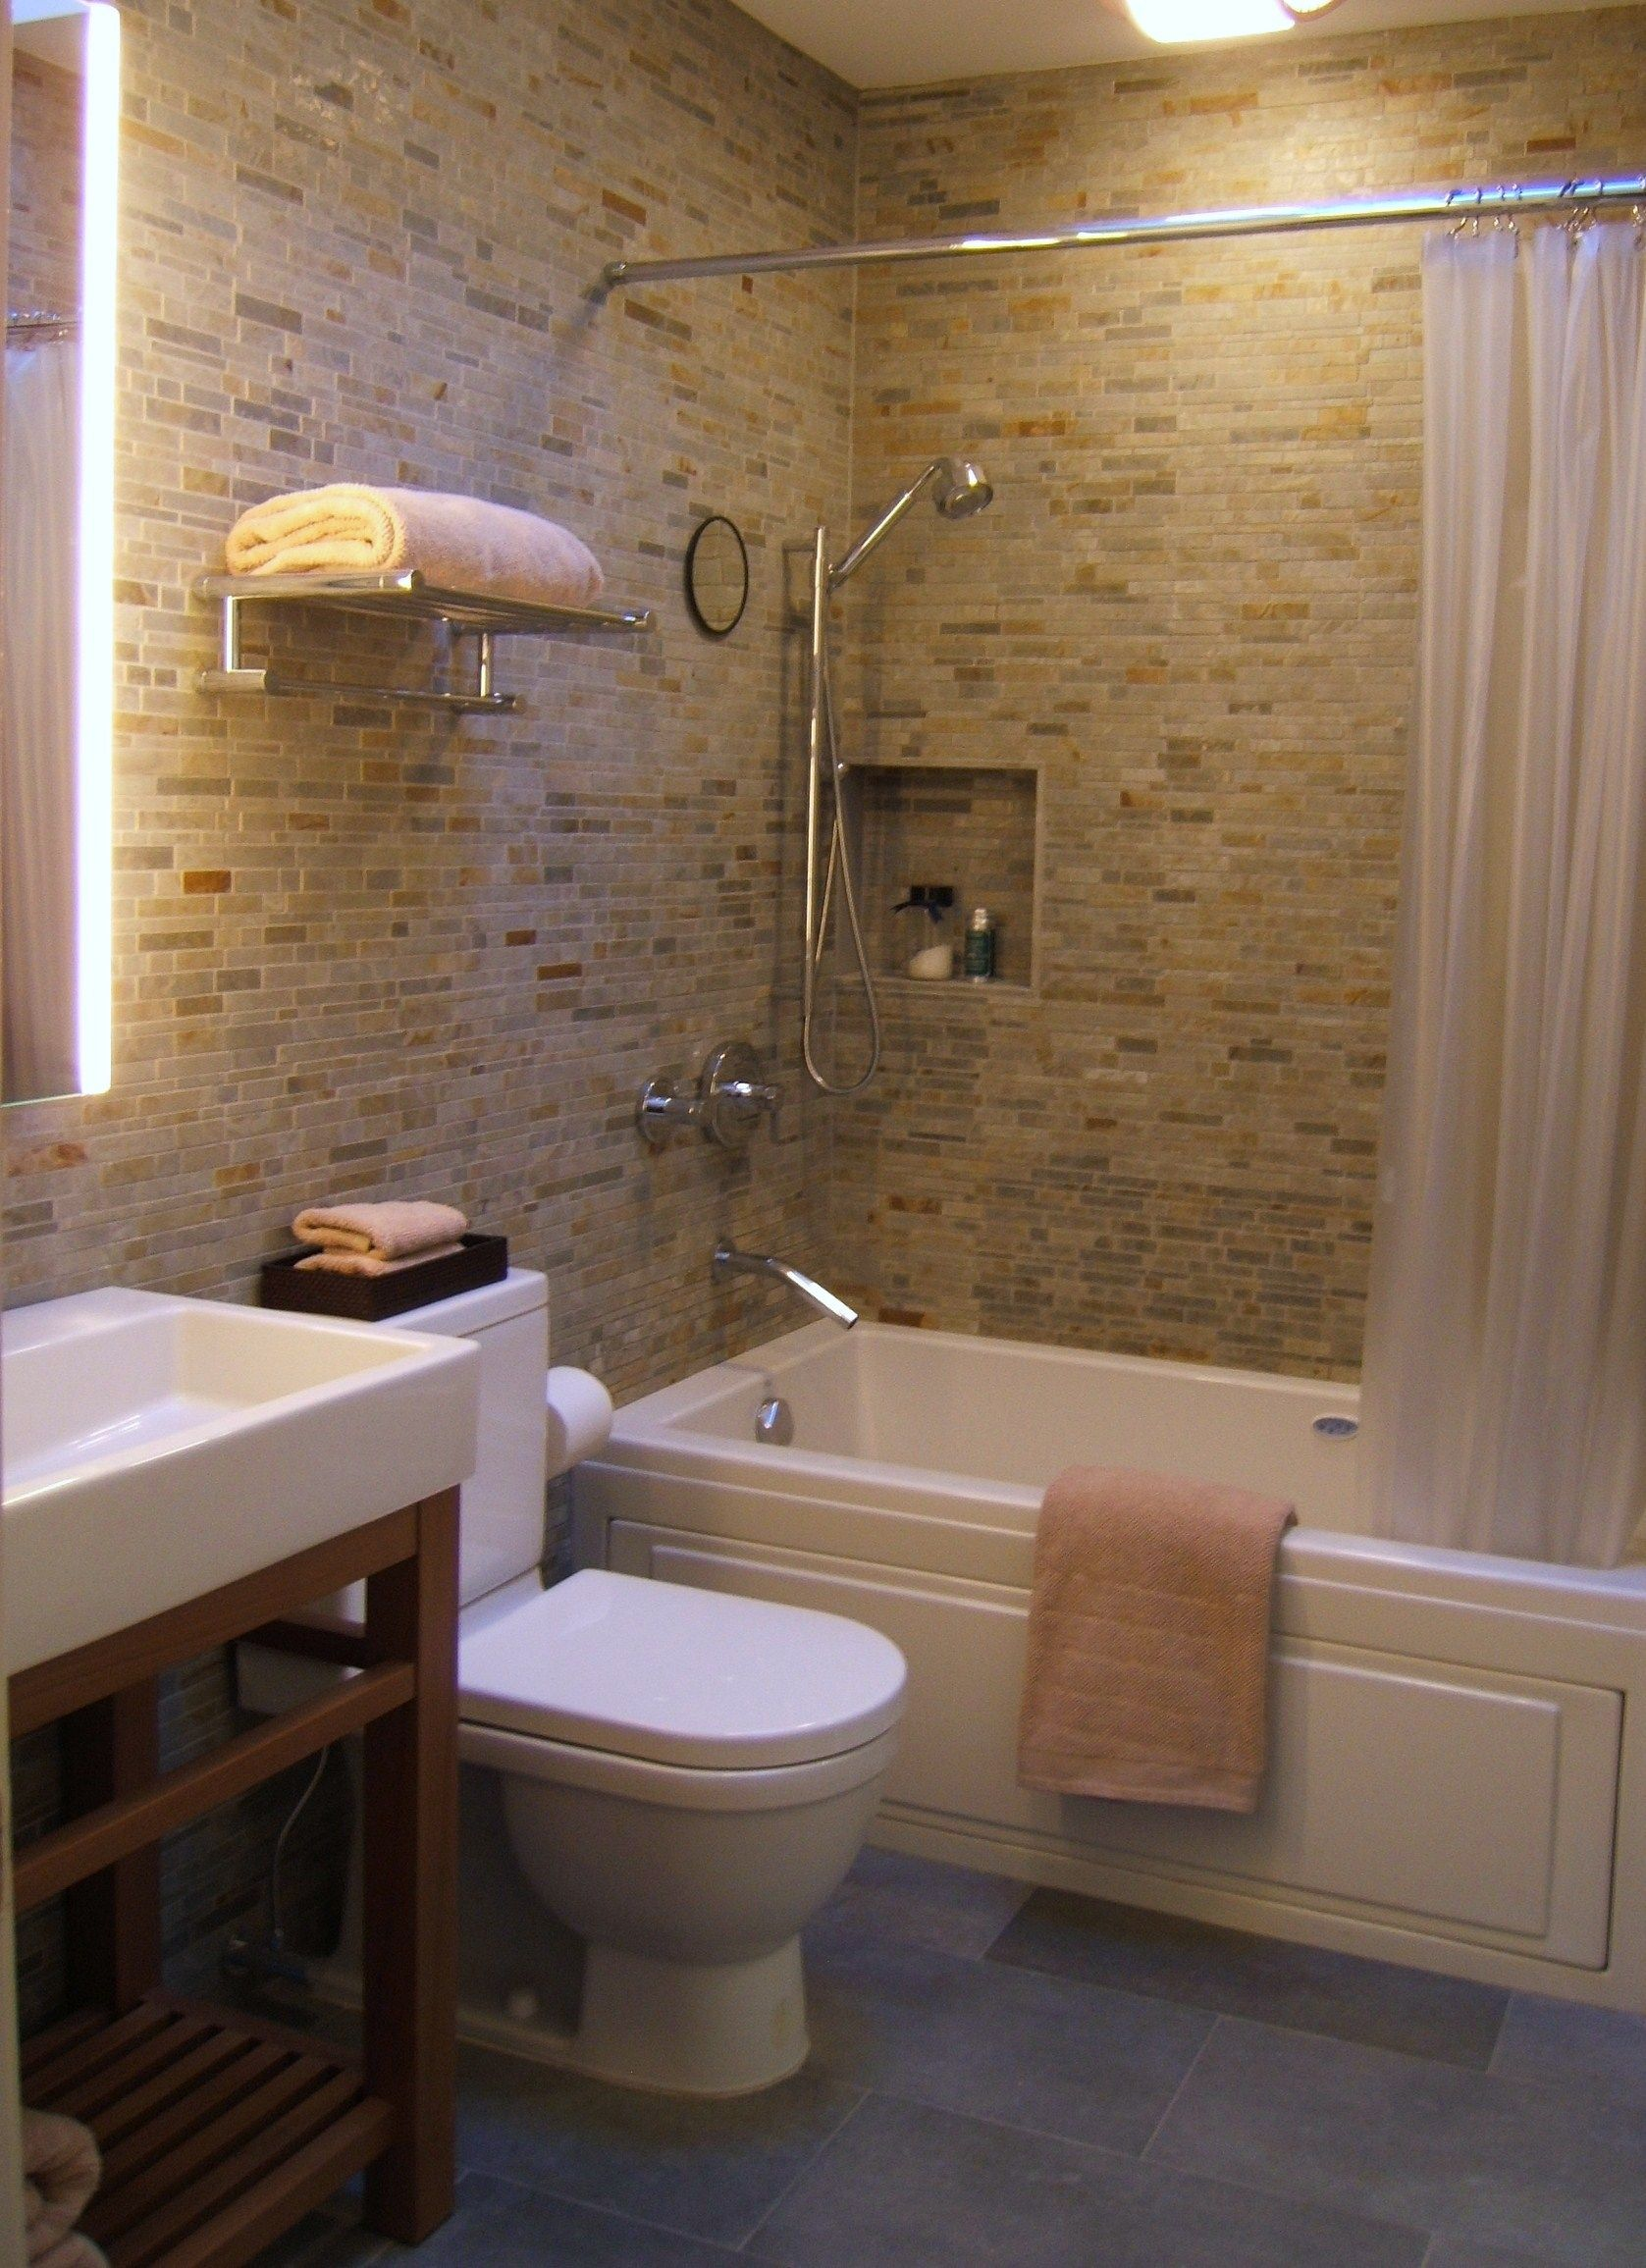 Small bathroom designs south africa small bath for Small full bathroom designs